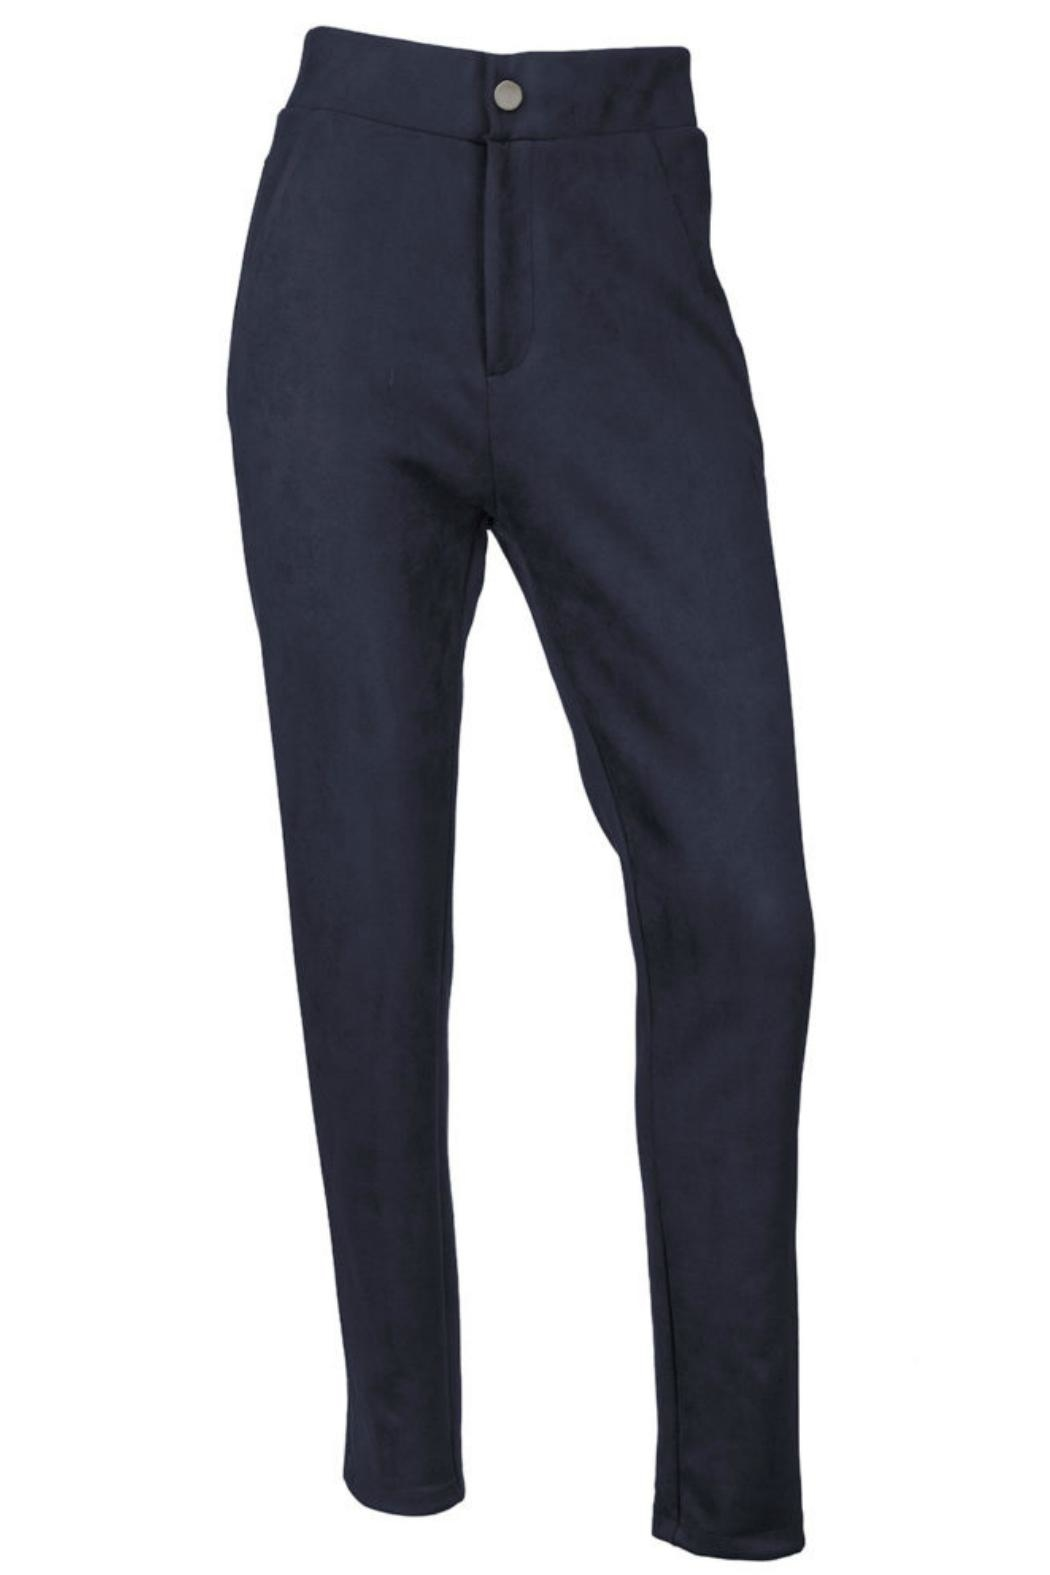 Arianna Navy Microsuede Pants - Main Image